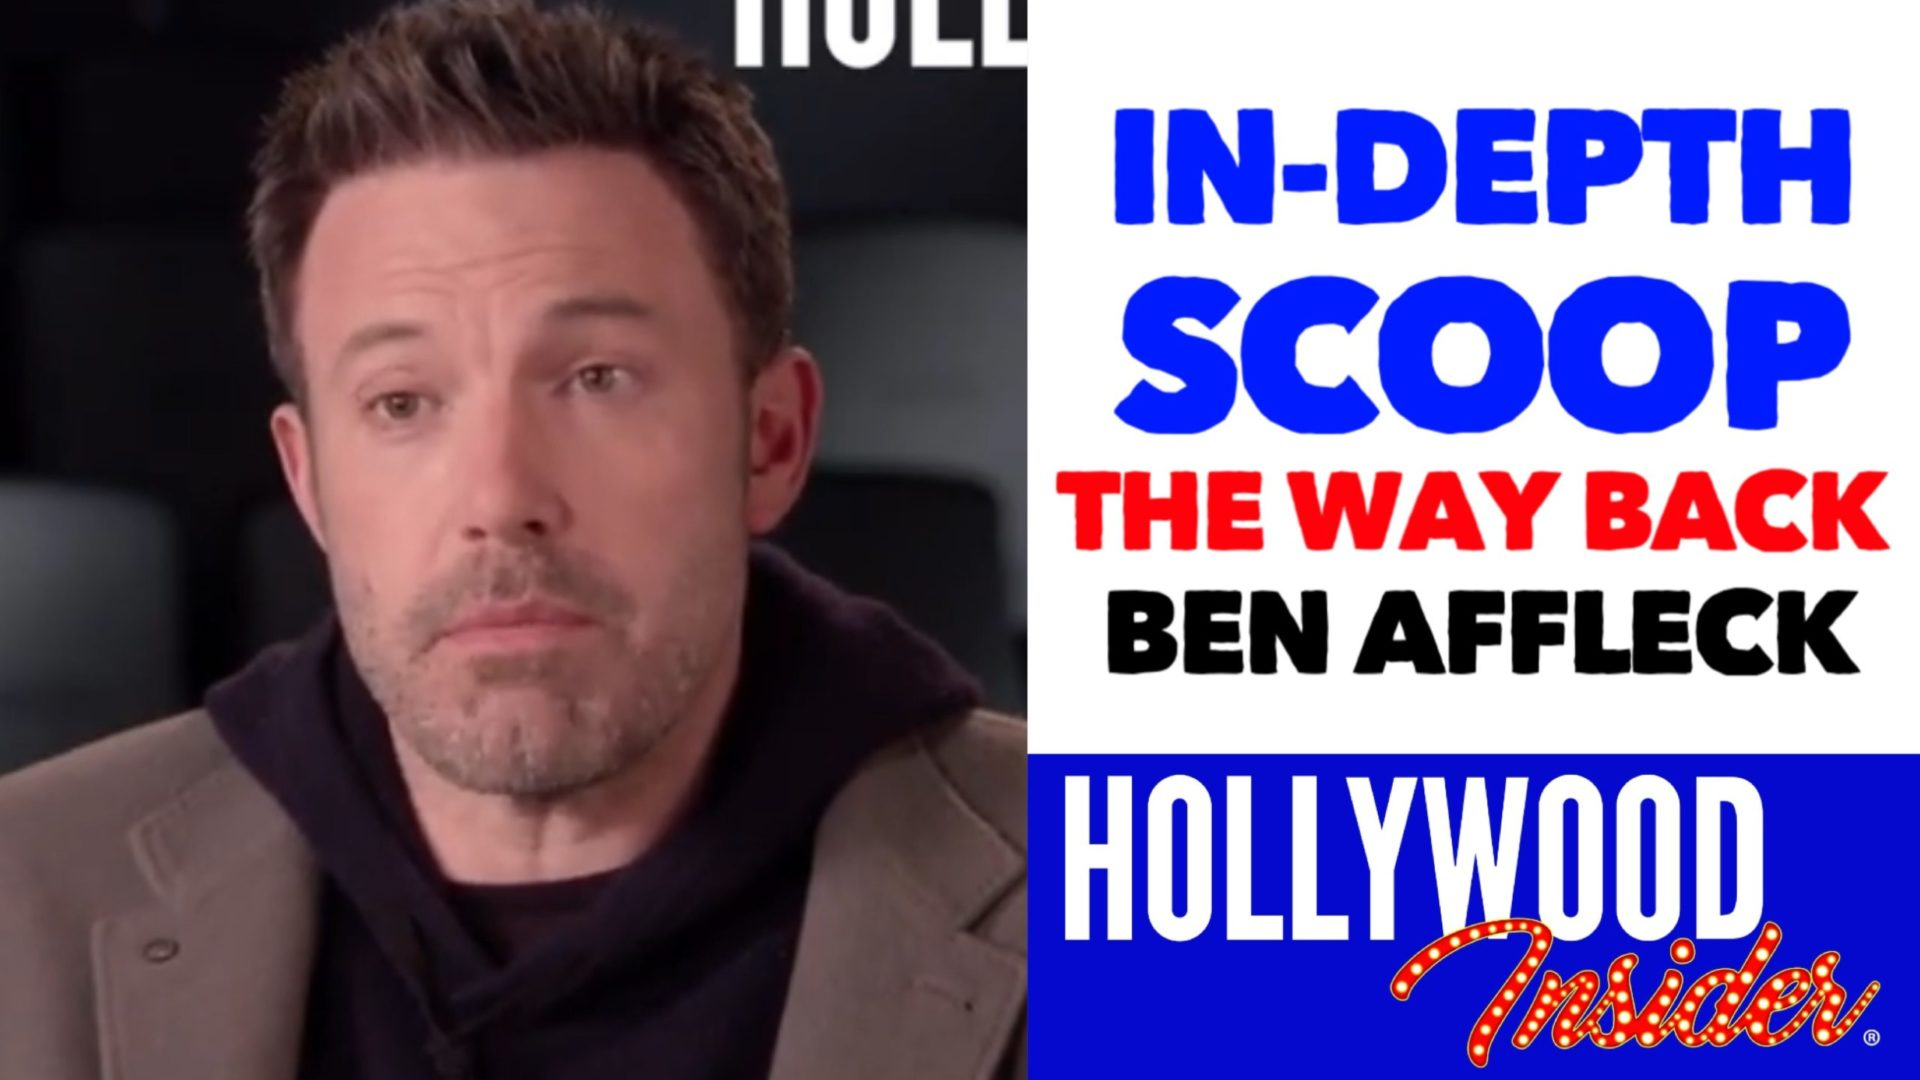 Hollywood Insider 'The Way Back' In-Depth Scoop, Ben Affleck, Reactions